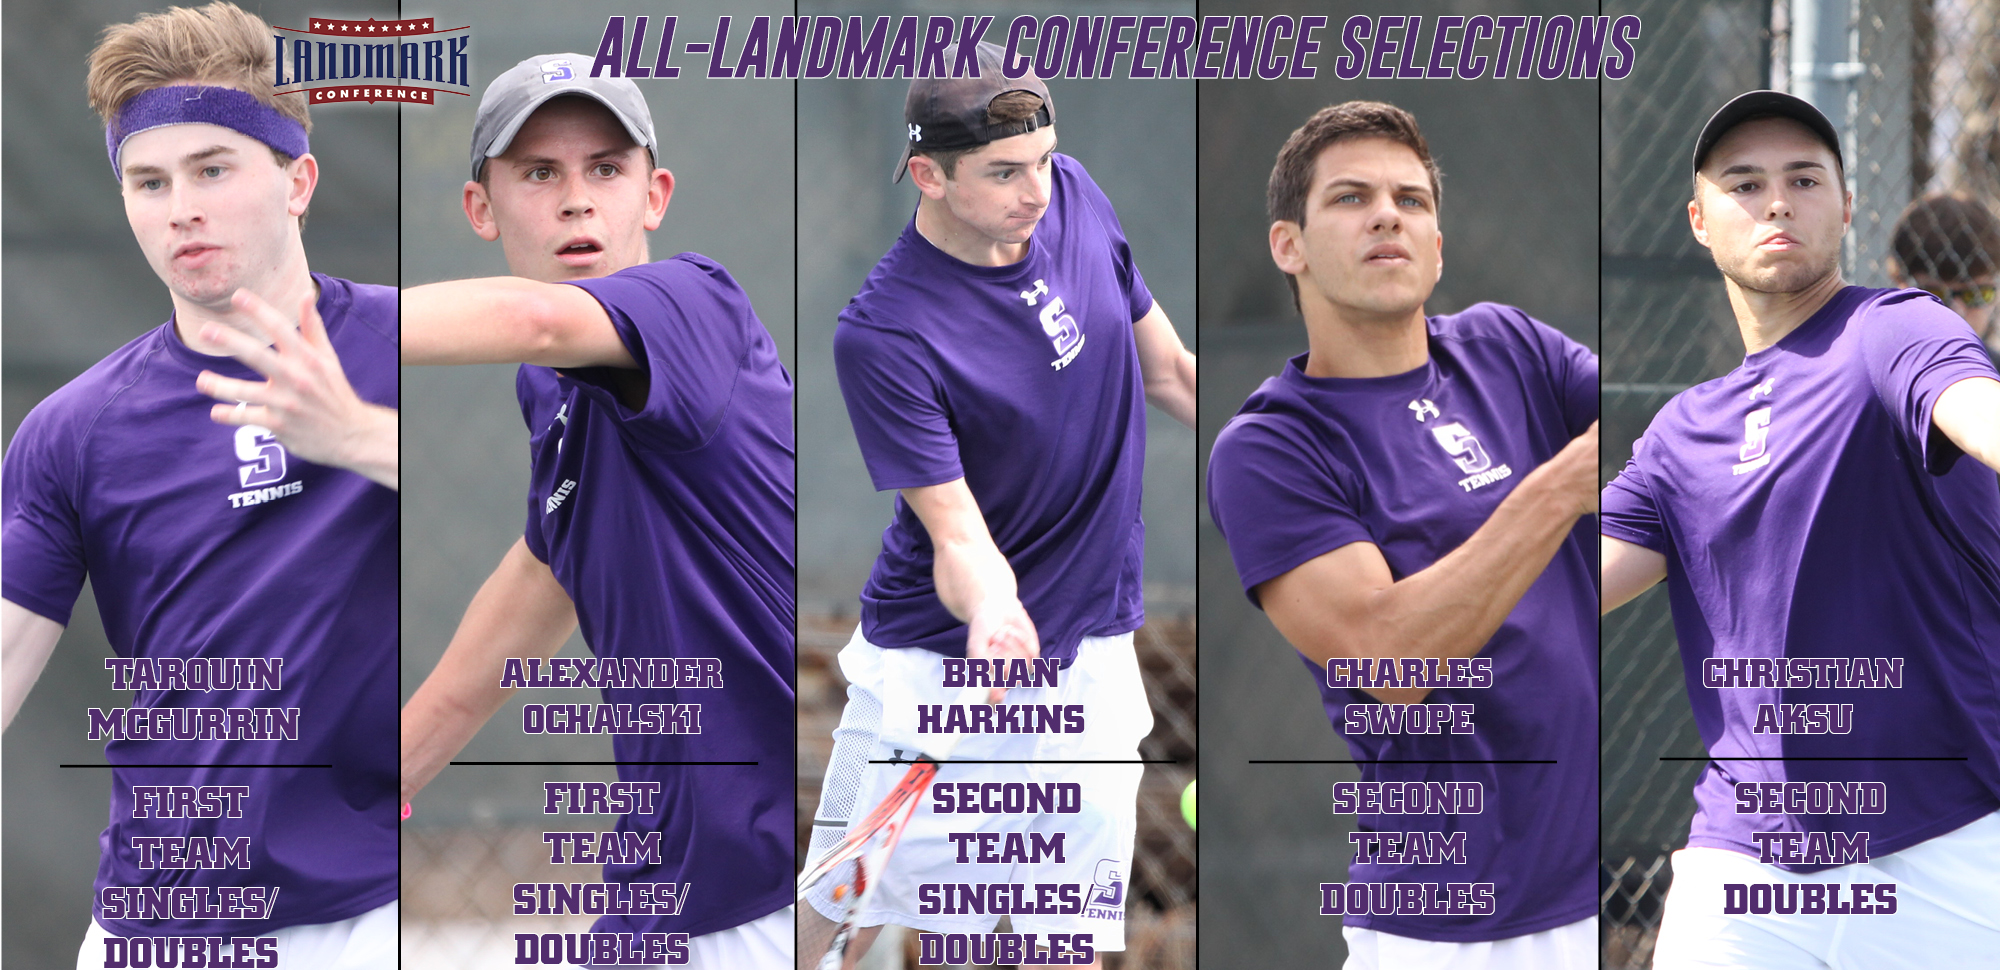 McGurrin/Ochalski Earn First Team Honors in both Singles & Doubles in Men's Tennis All-Landmark Selections